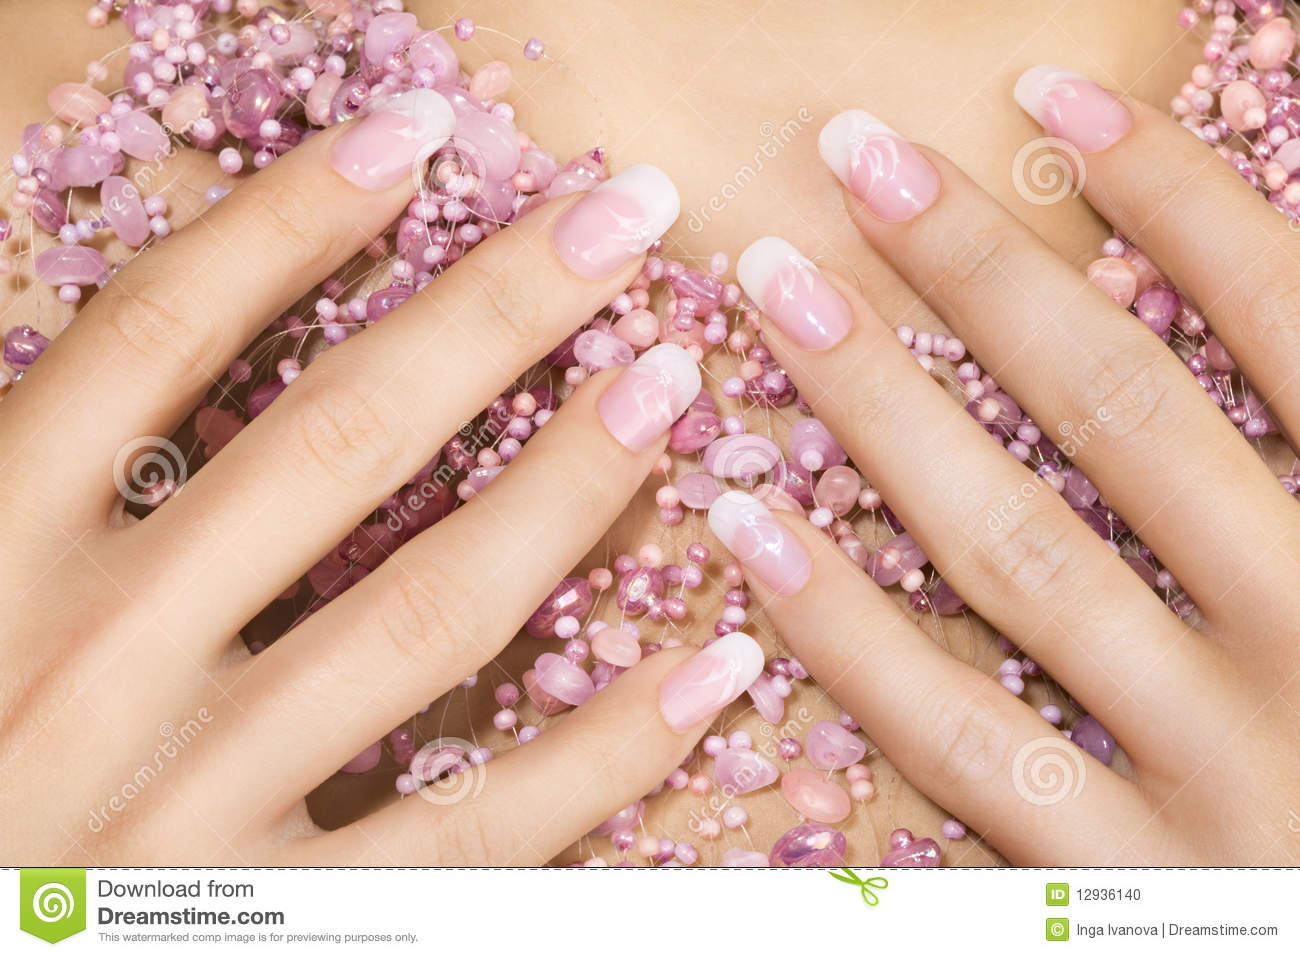 Elegant nail design stock photo. Image of french, female - 12936140